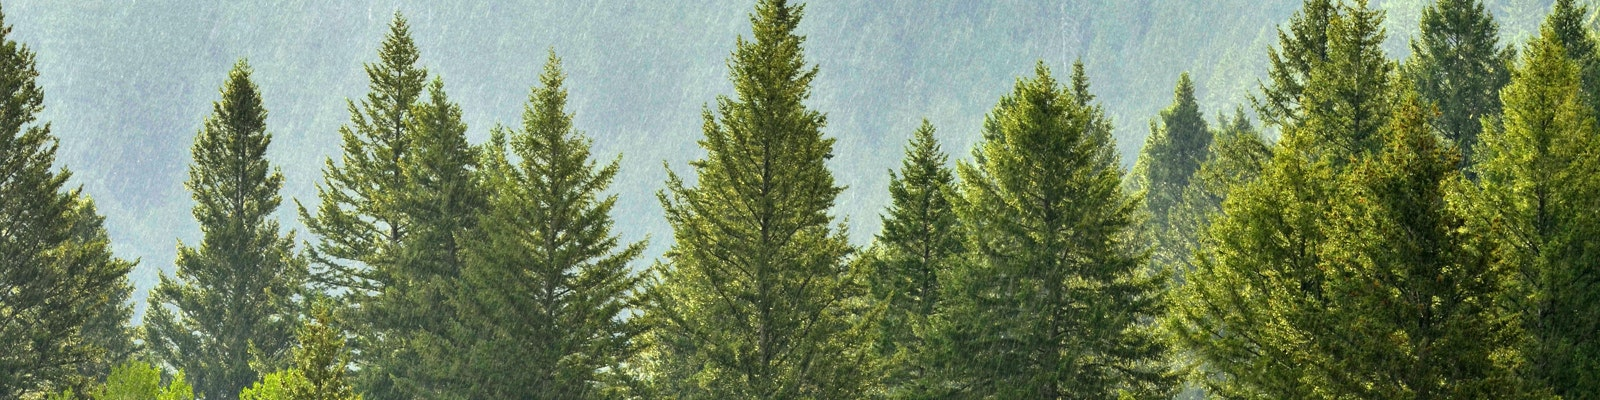 Canopy of conifer trees